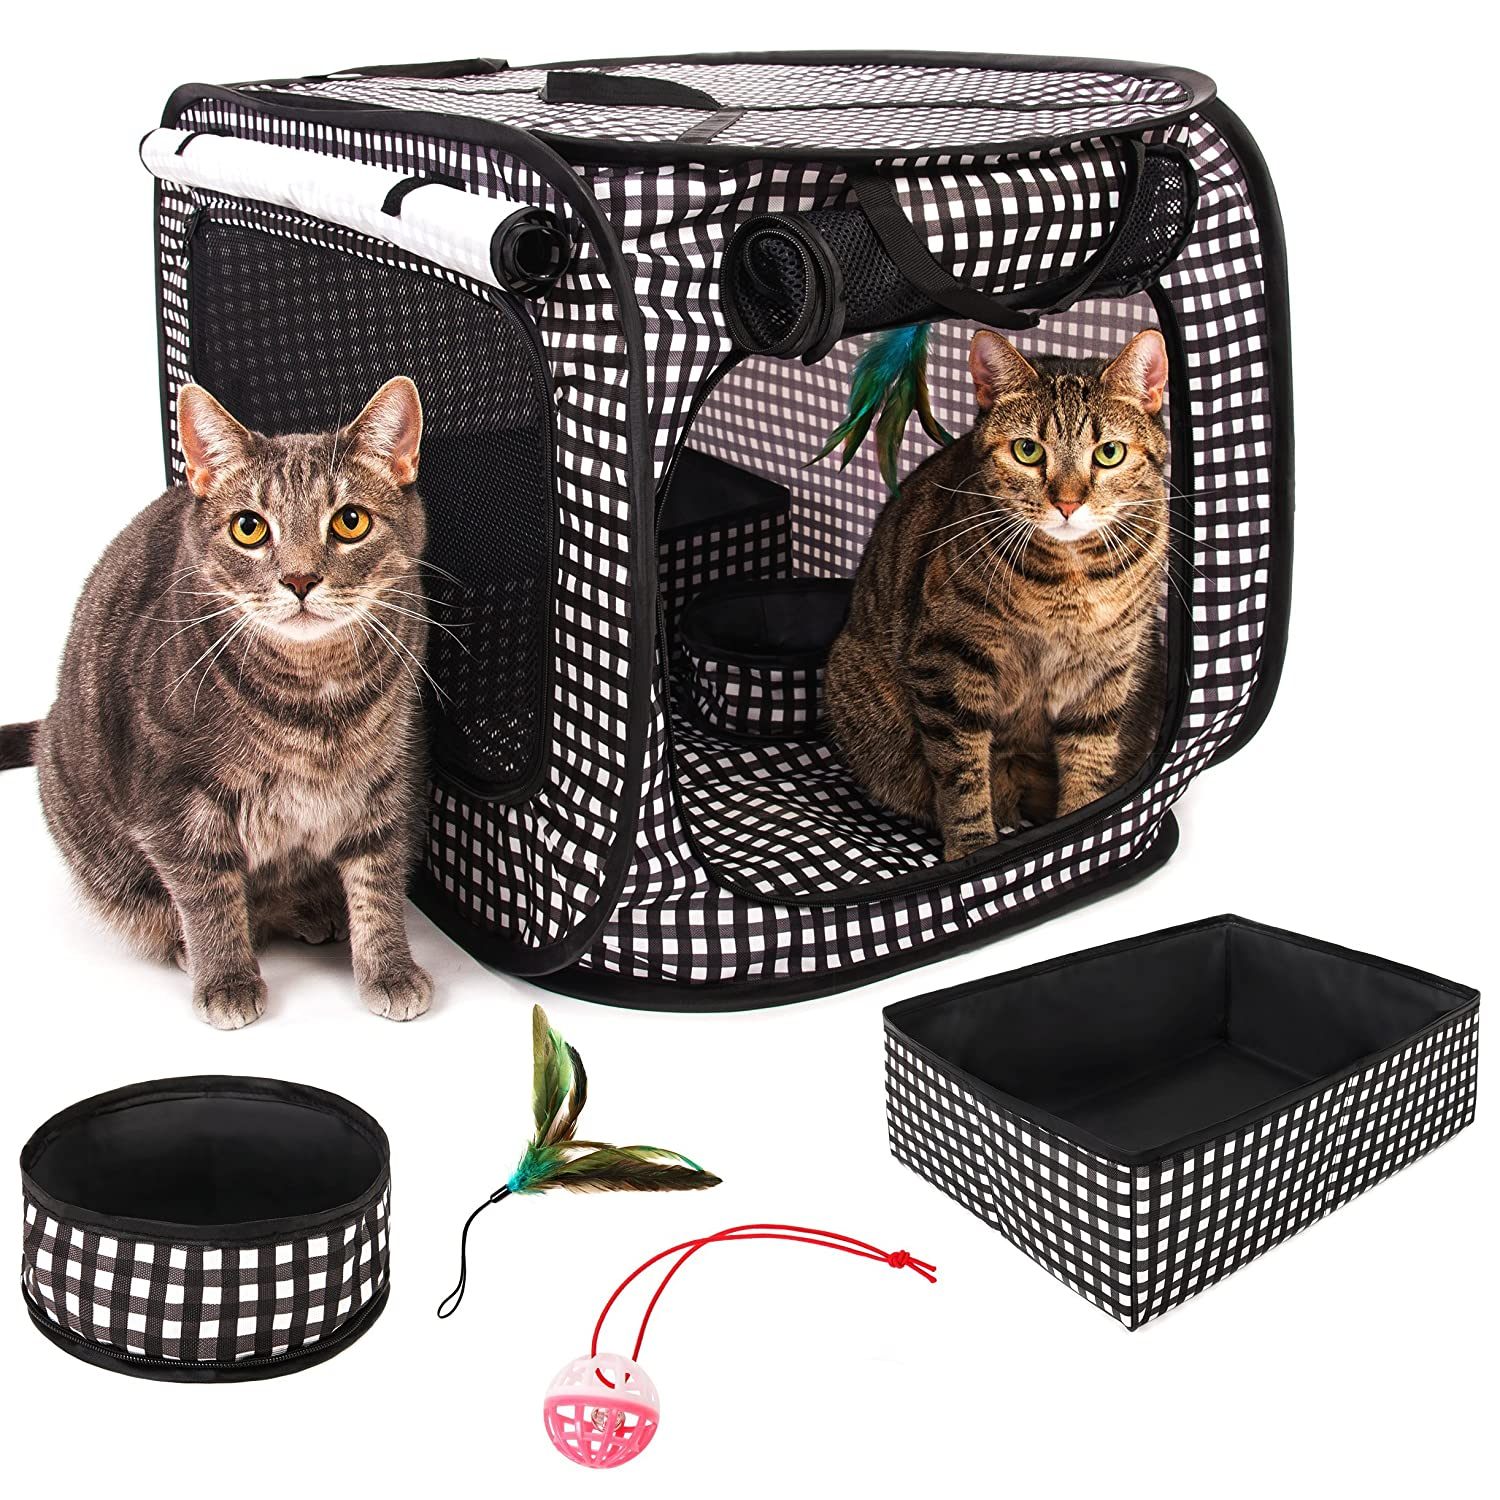 CheeringPet, Cat Travel Cage: Portable Pop Up Pet Crate with Collapsible Litter Box, Foldable Feeding Bowl, Hanging Feather Teaser and Ball, Carrying Bag, Extra Large 32